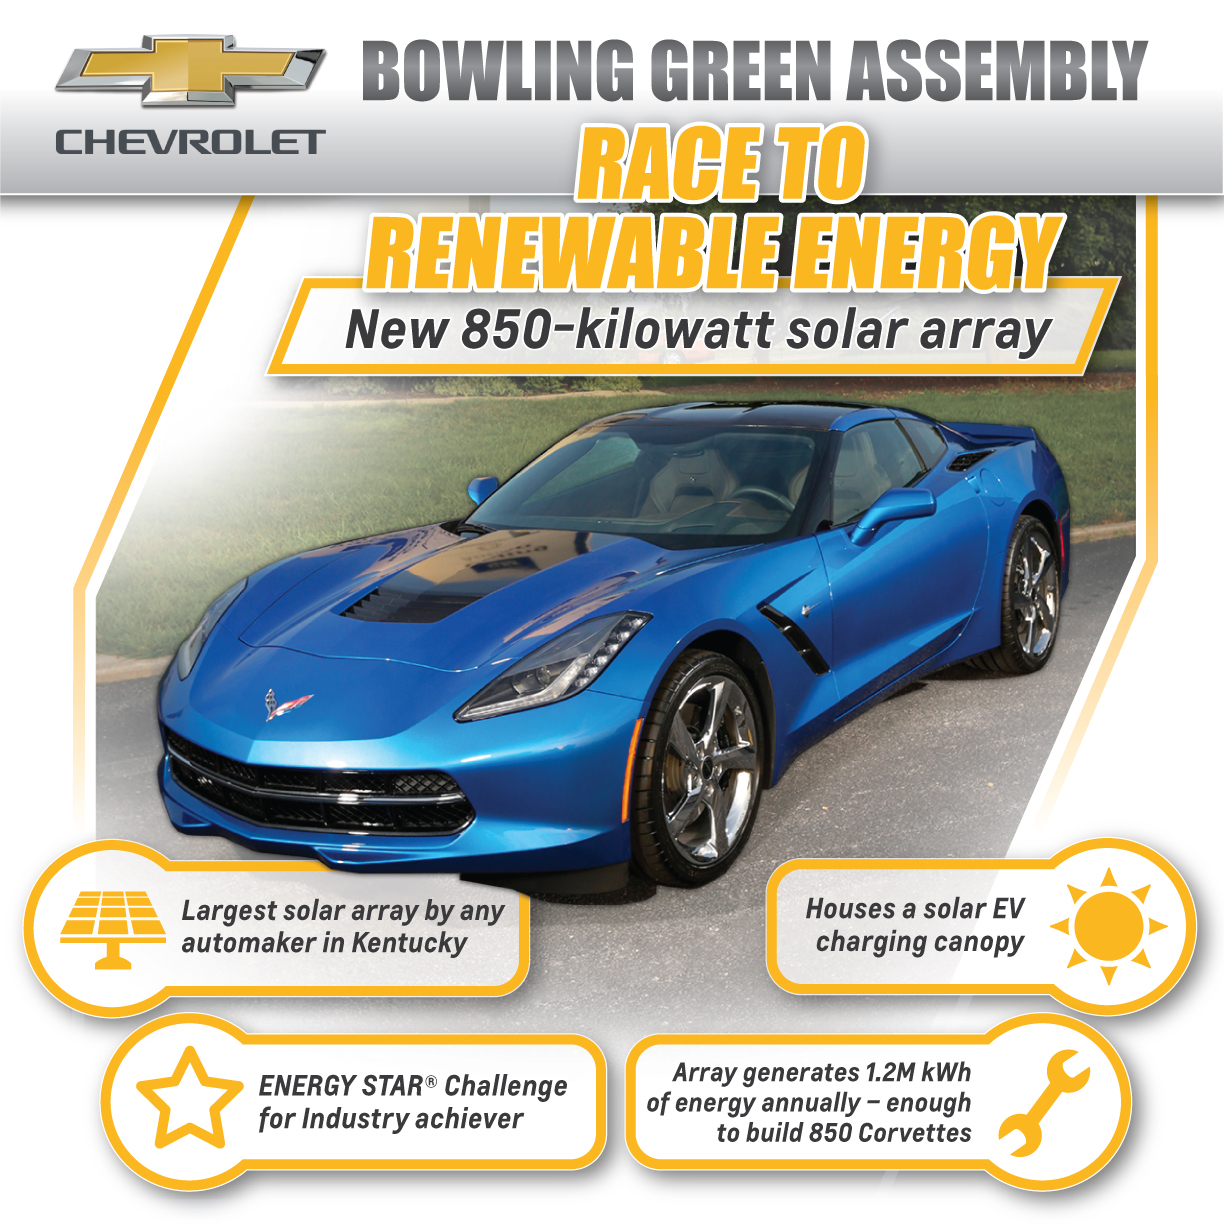 Solar Array at Corvette Plant Drives GM to Lead in Solar Energy Use